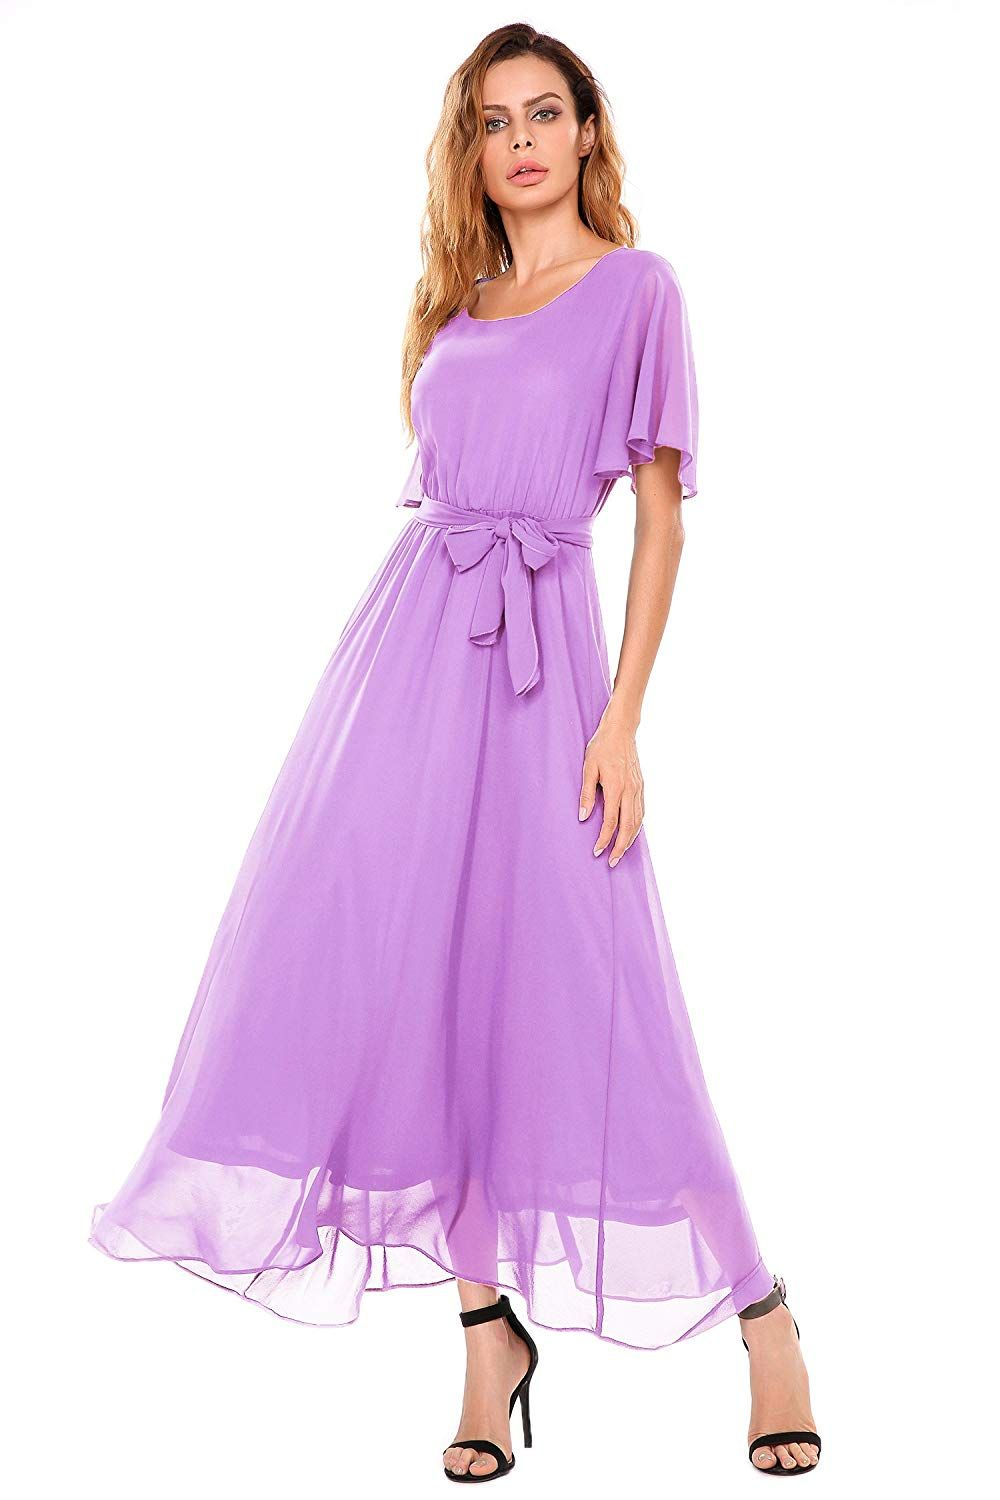 5676bdf476fde ... Bridesmaids Dresses Lavender with Sleeves Formal Prom Party Teen Long  Maxi ACEVOG Women Casual Short Flutter Sleeve O Neck Flare Flowy Chiffon  Long ...